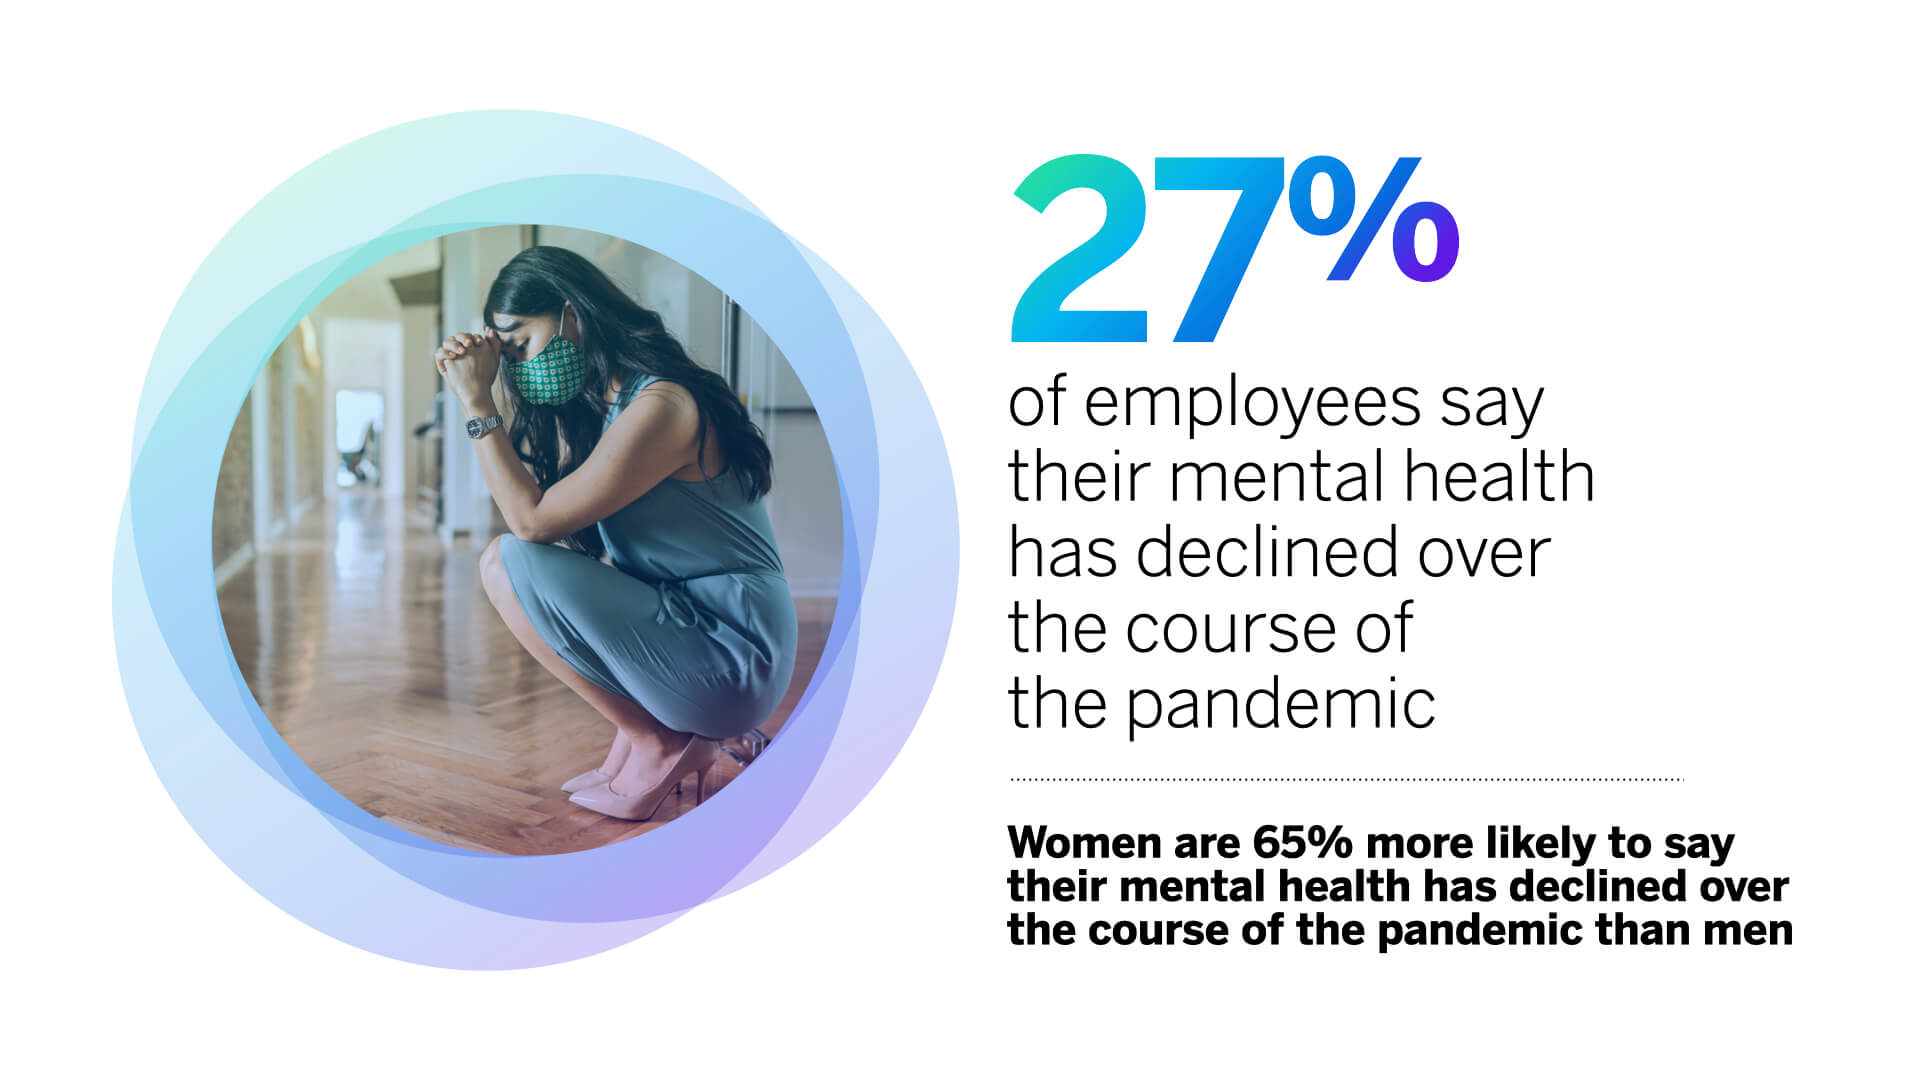 27% of employees say their mental health has declined over the course of the pandemic